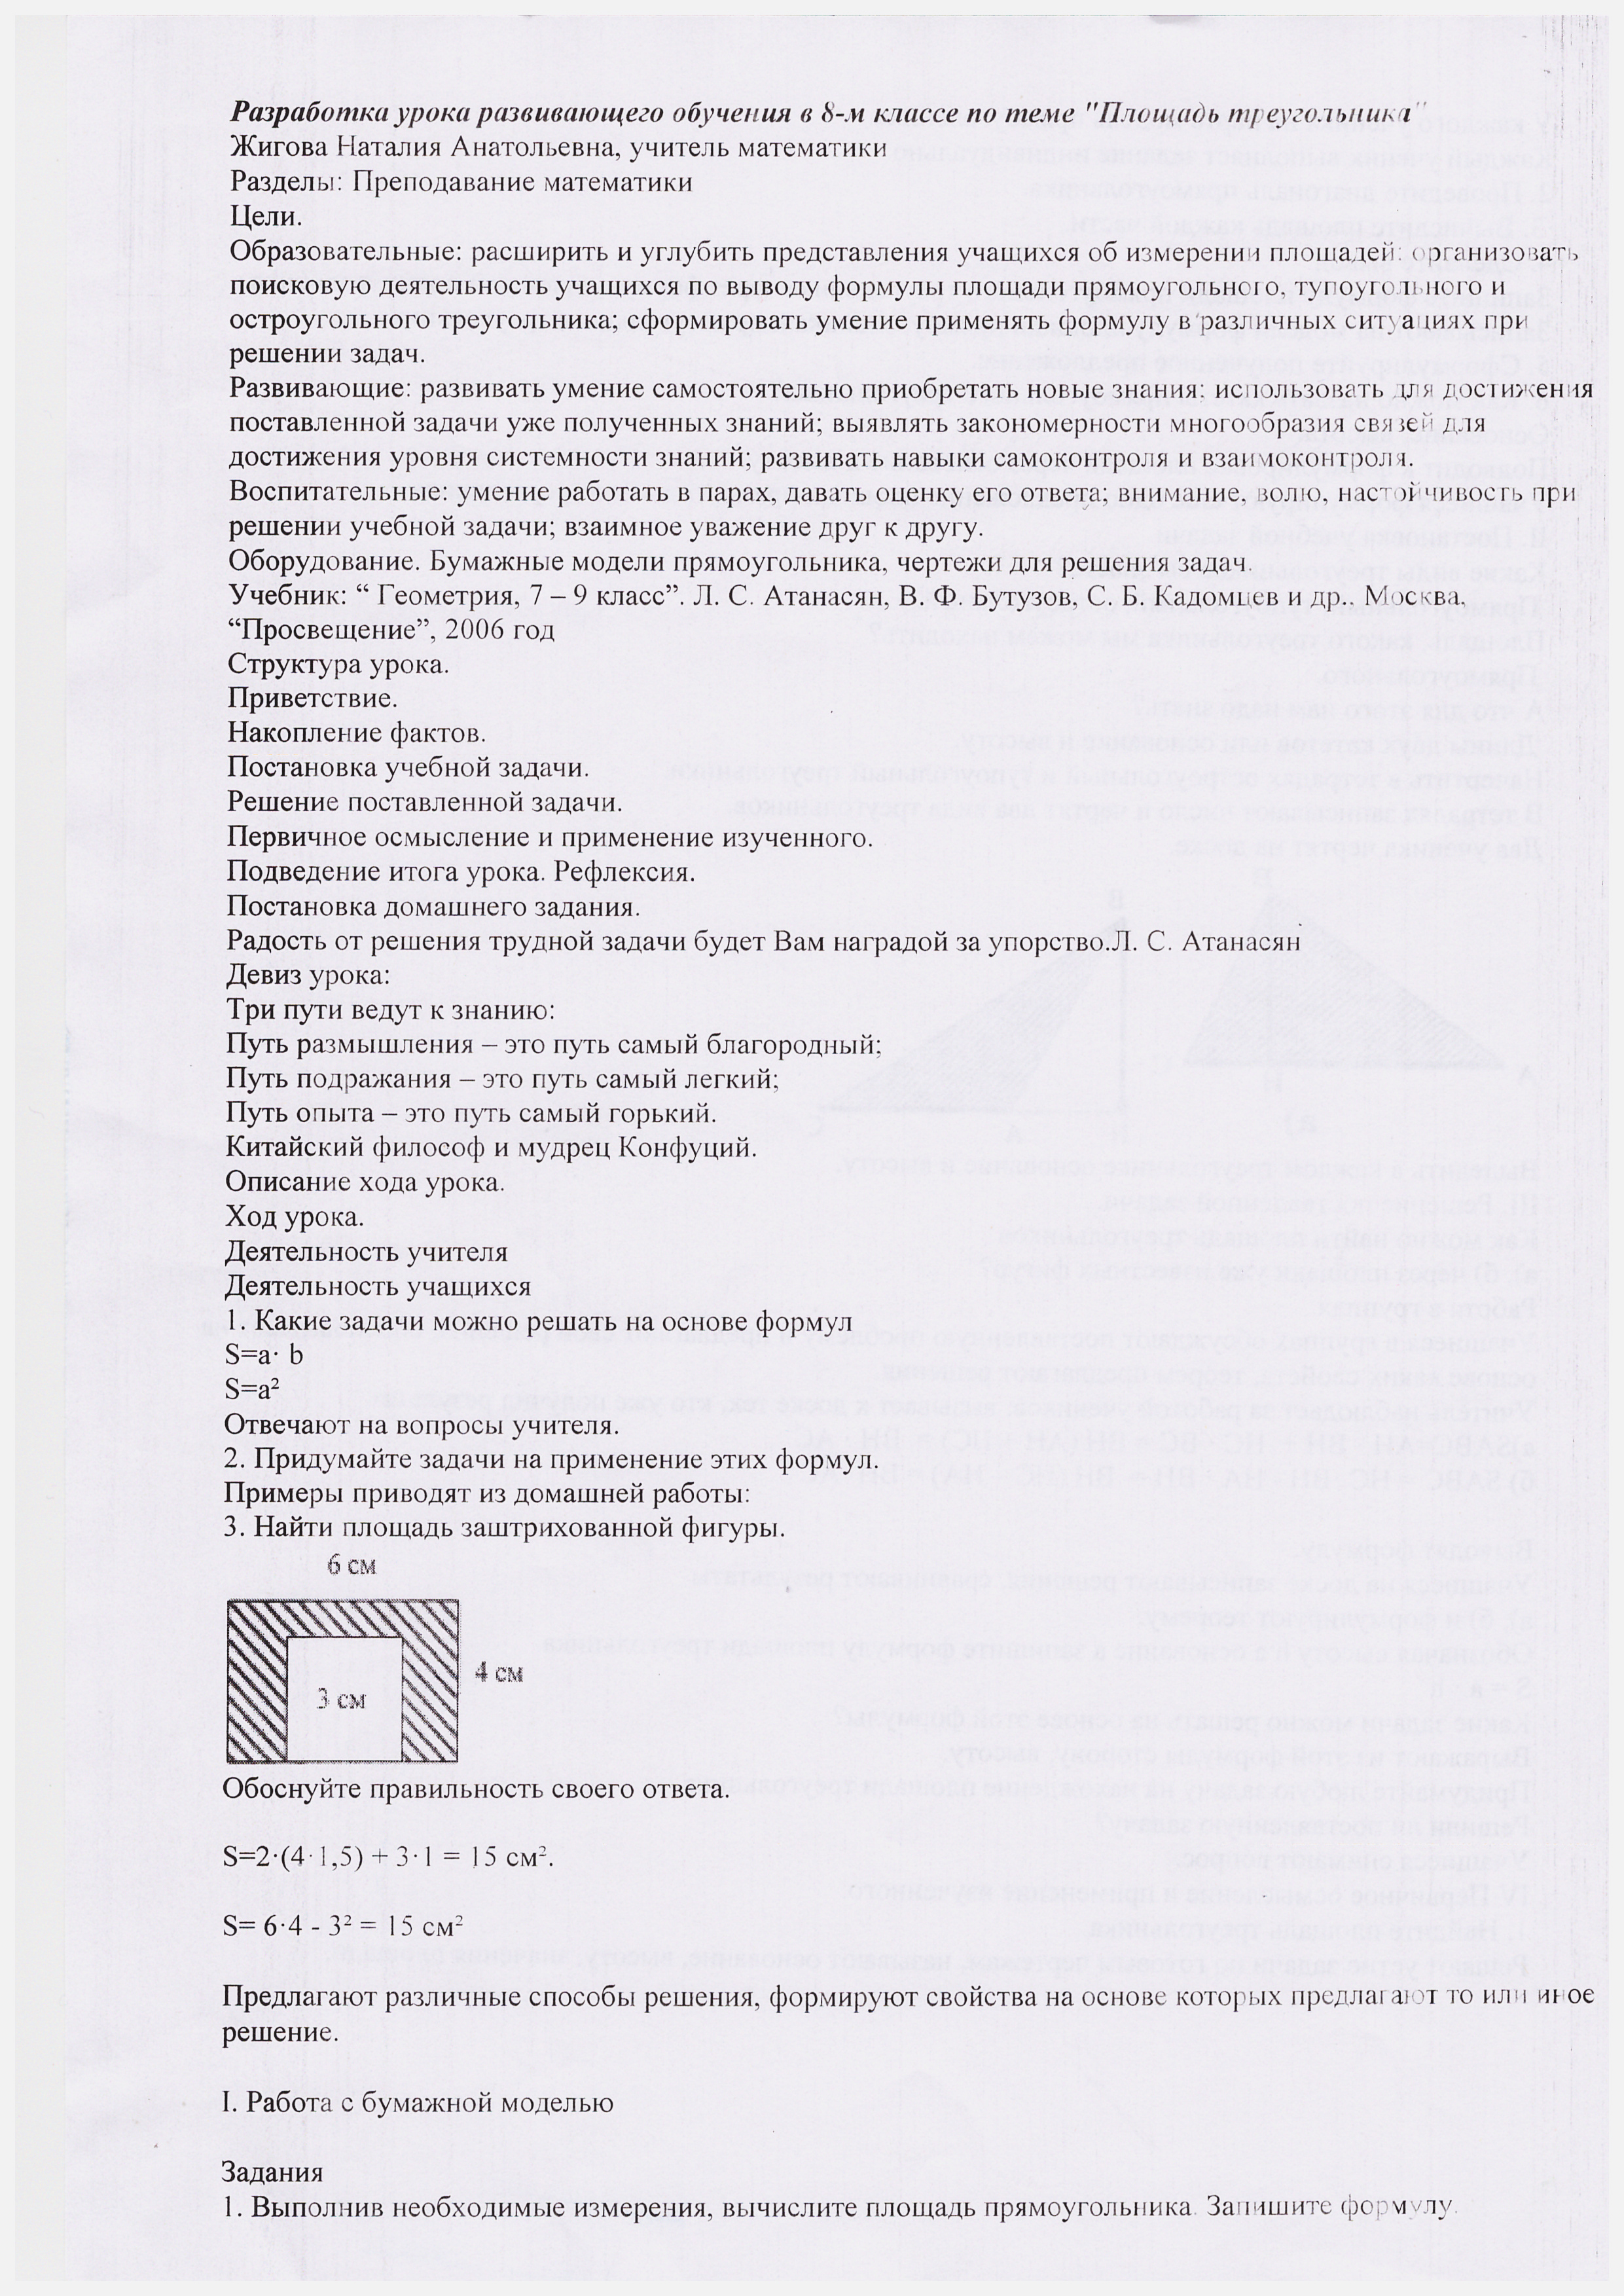 C:\Users\Администратор\Documents\Scan\Scan_20140310_052657.jpg